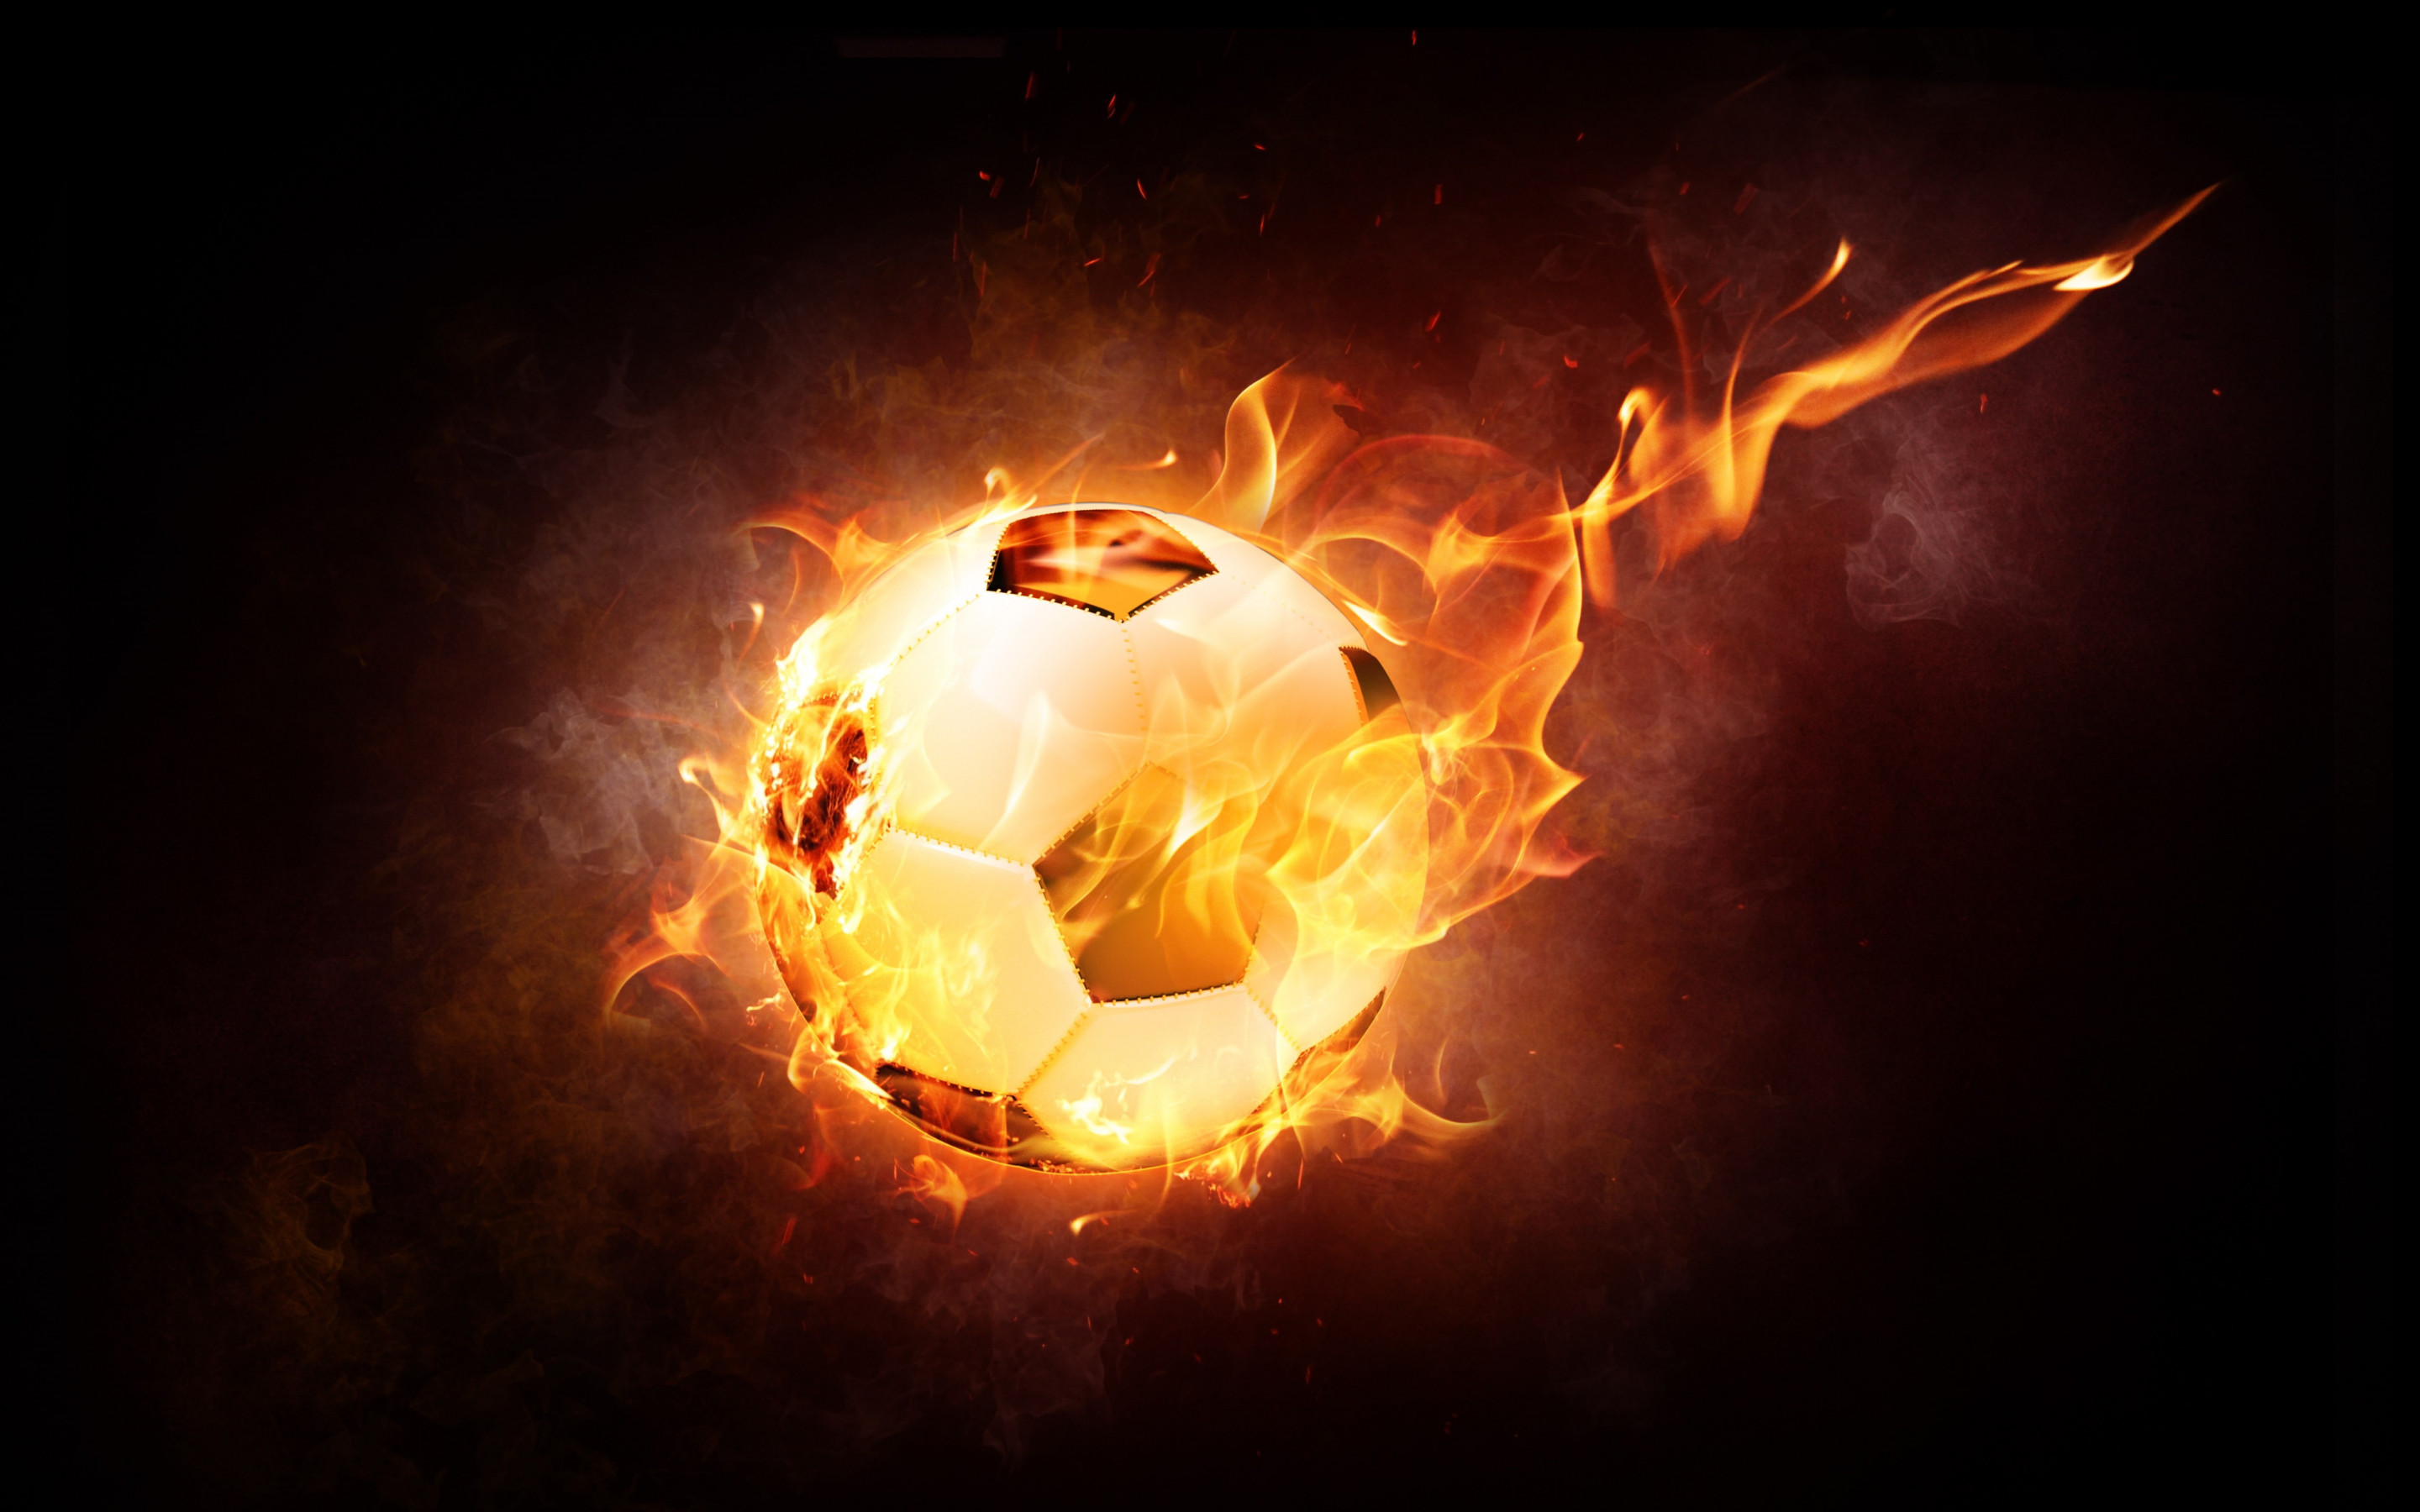 The football ball is on fire wallpaper 2880x1800